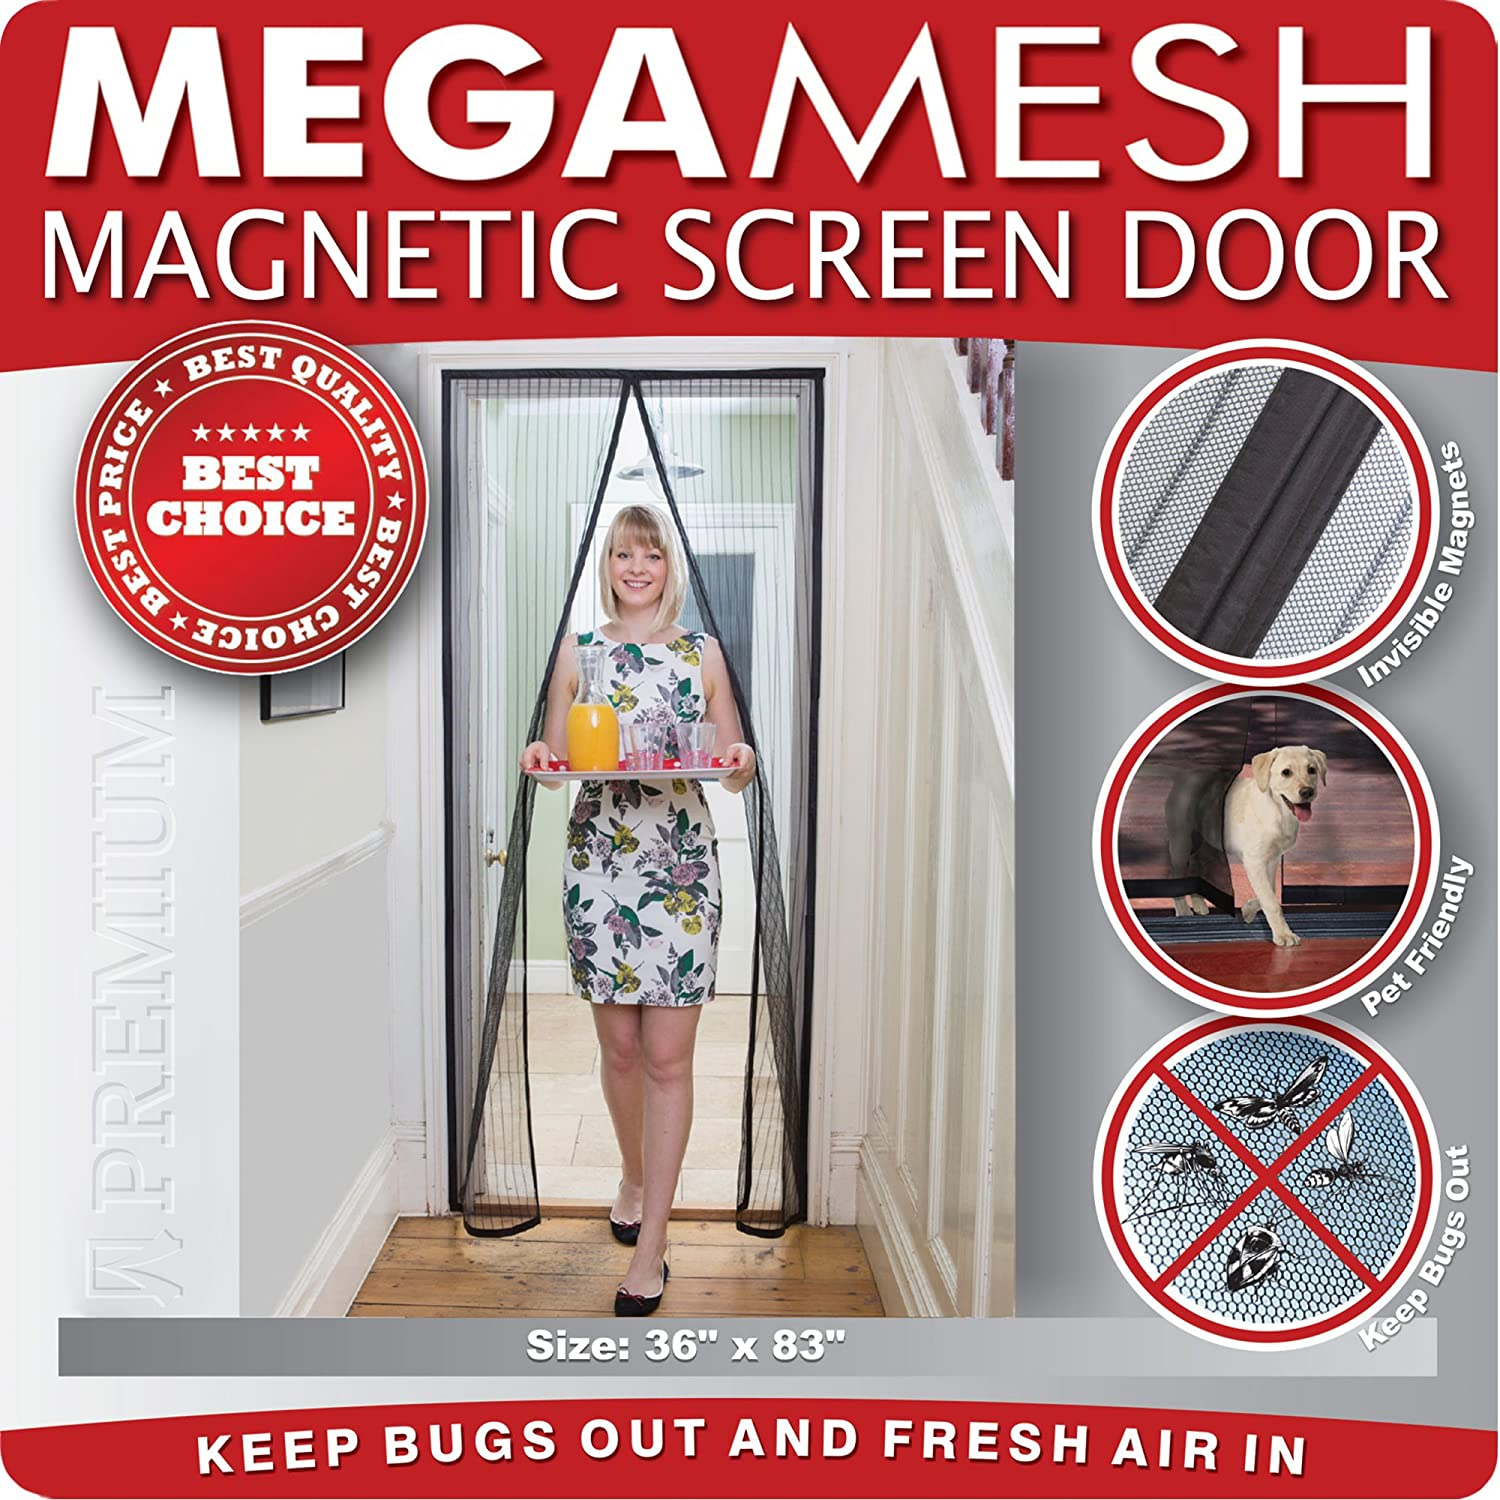 Review Magnetic Screen Door Mega Mesh Woman Of Many Roles